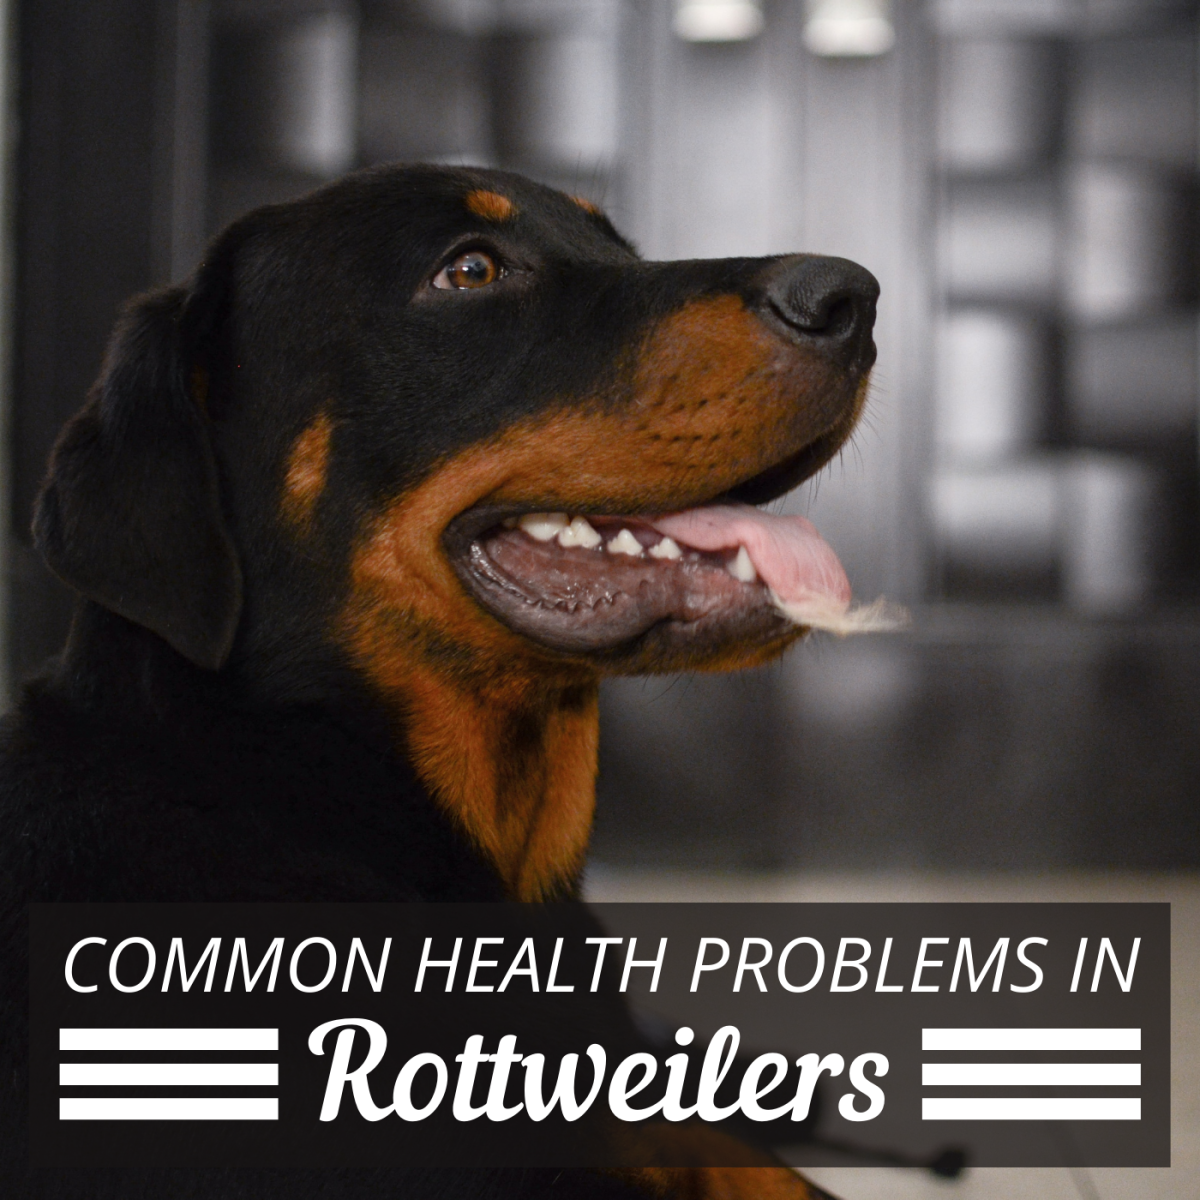 Rottweilers are prone to a number of health issues, so it's important that they see a vet consistently.